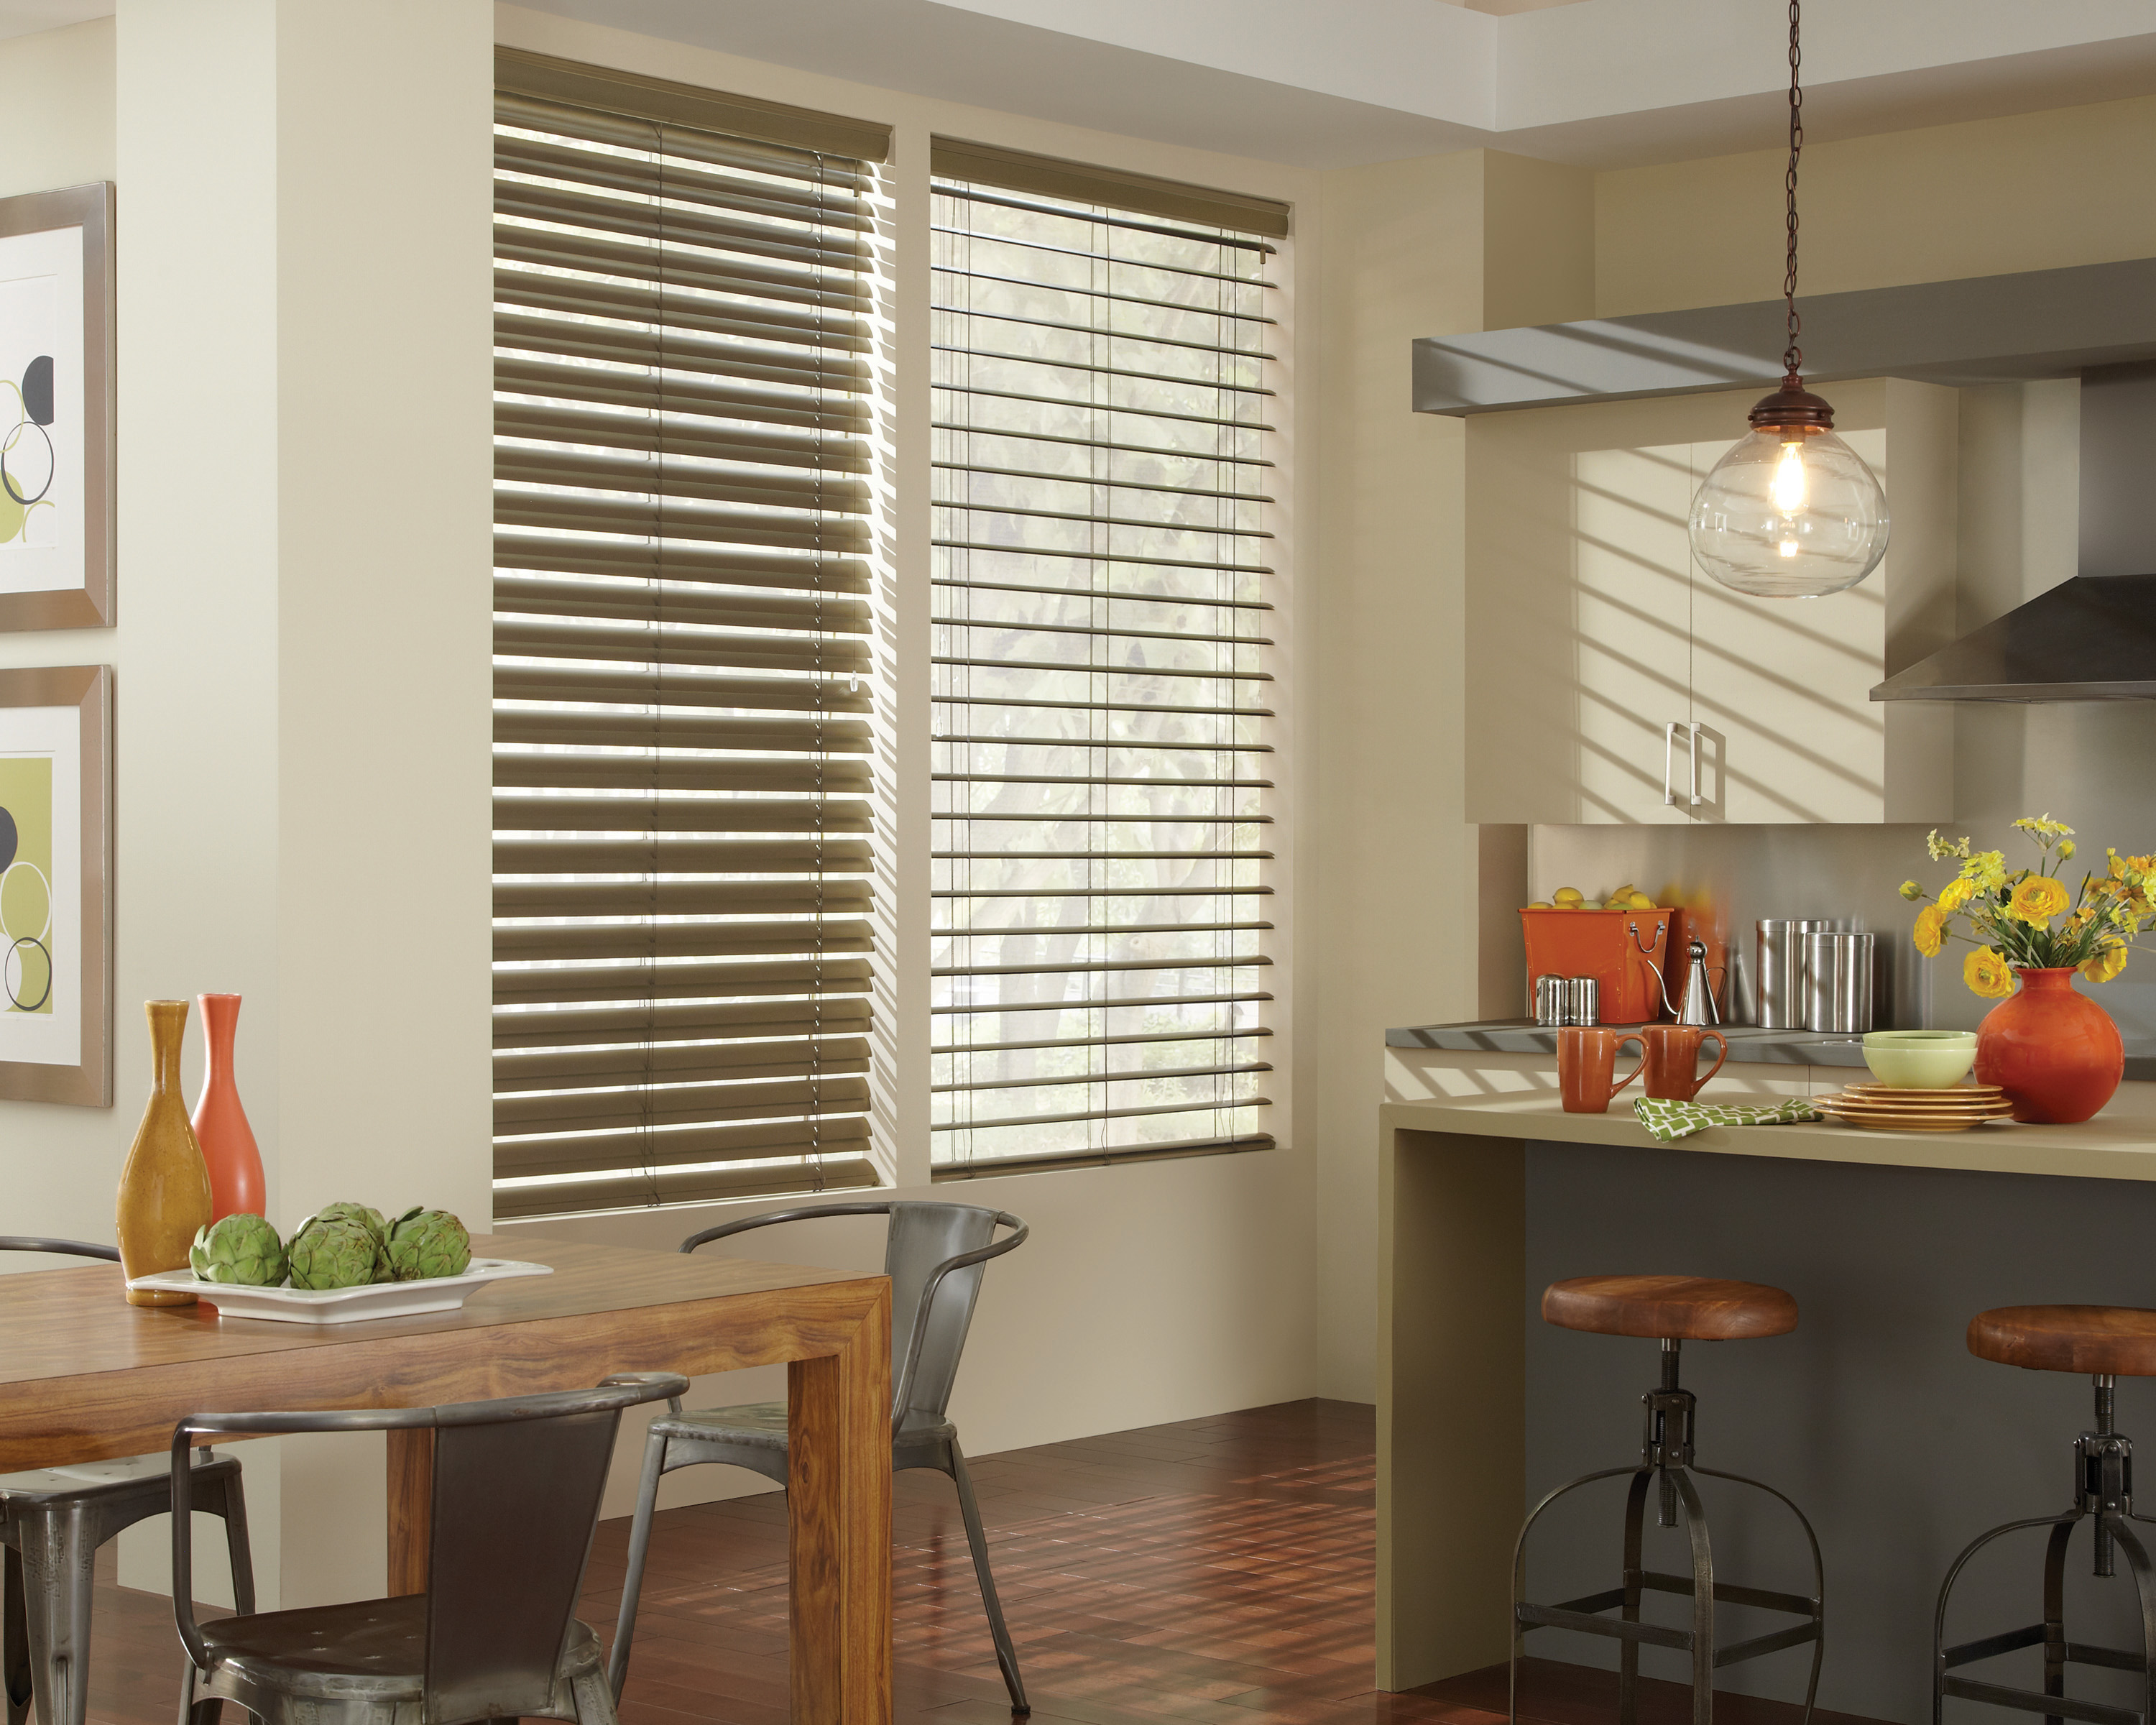 Live A Healthier Happier Life With Hypoallergenic Window Treatments